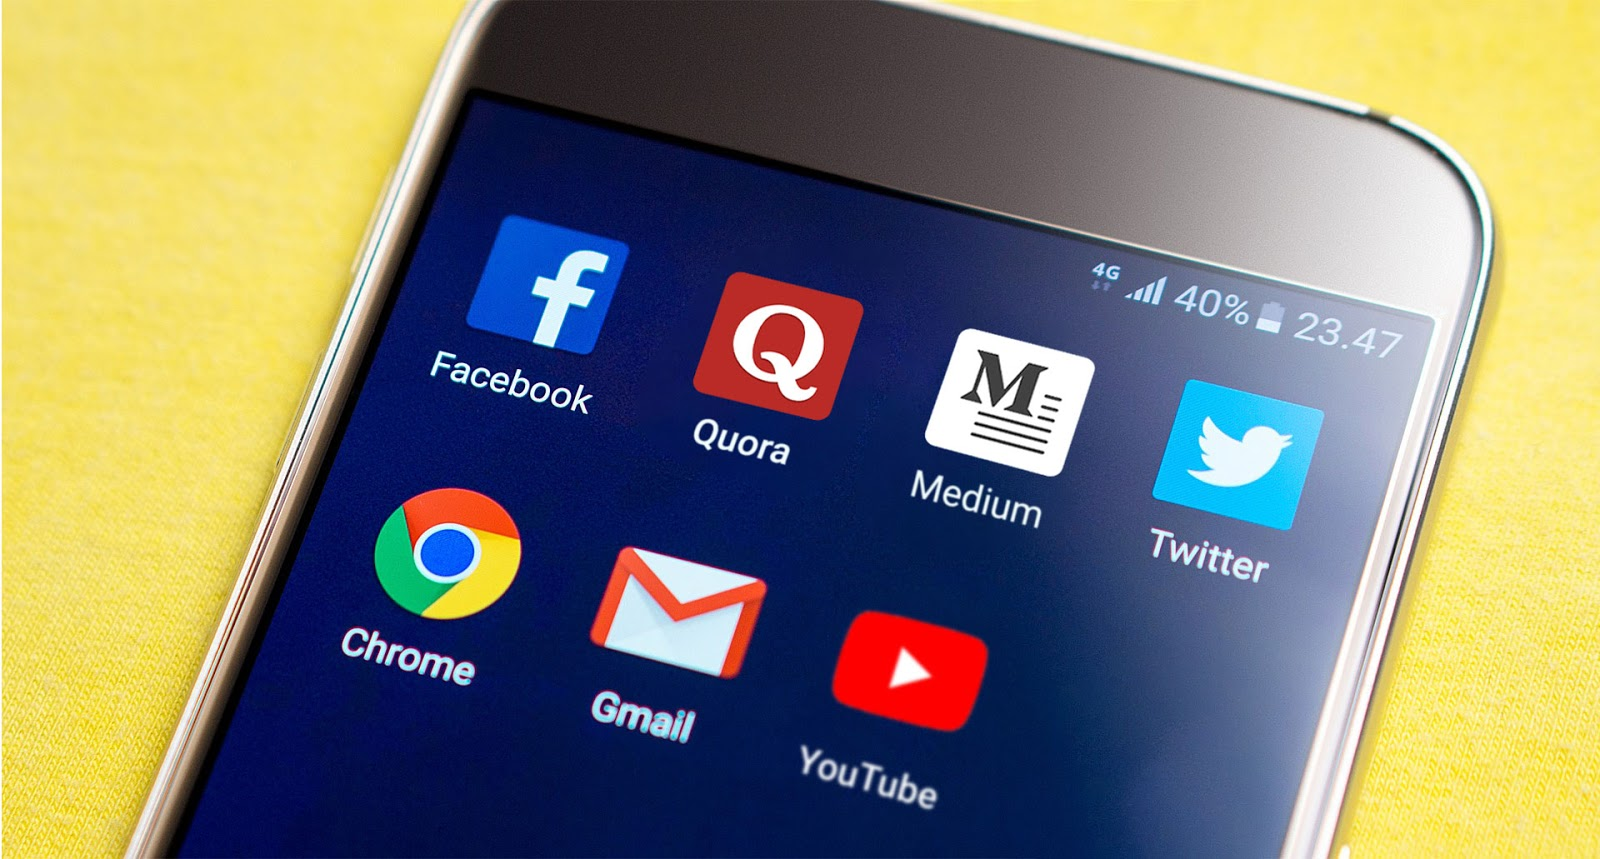 Don't miss out on these amazing Social Media platforms!